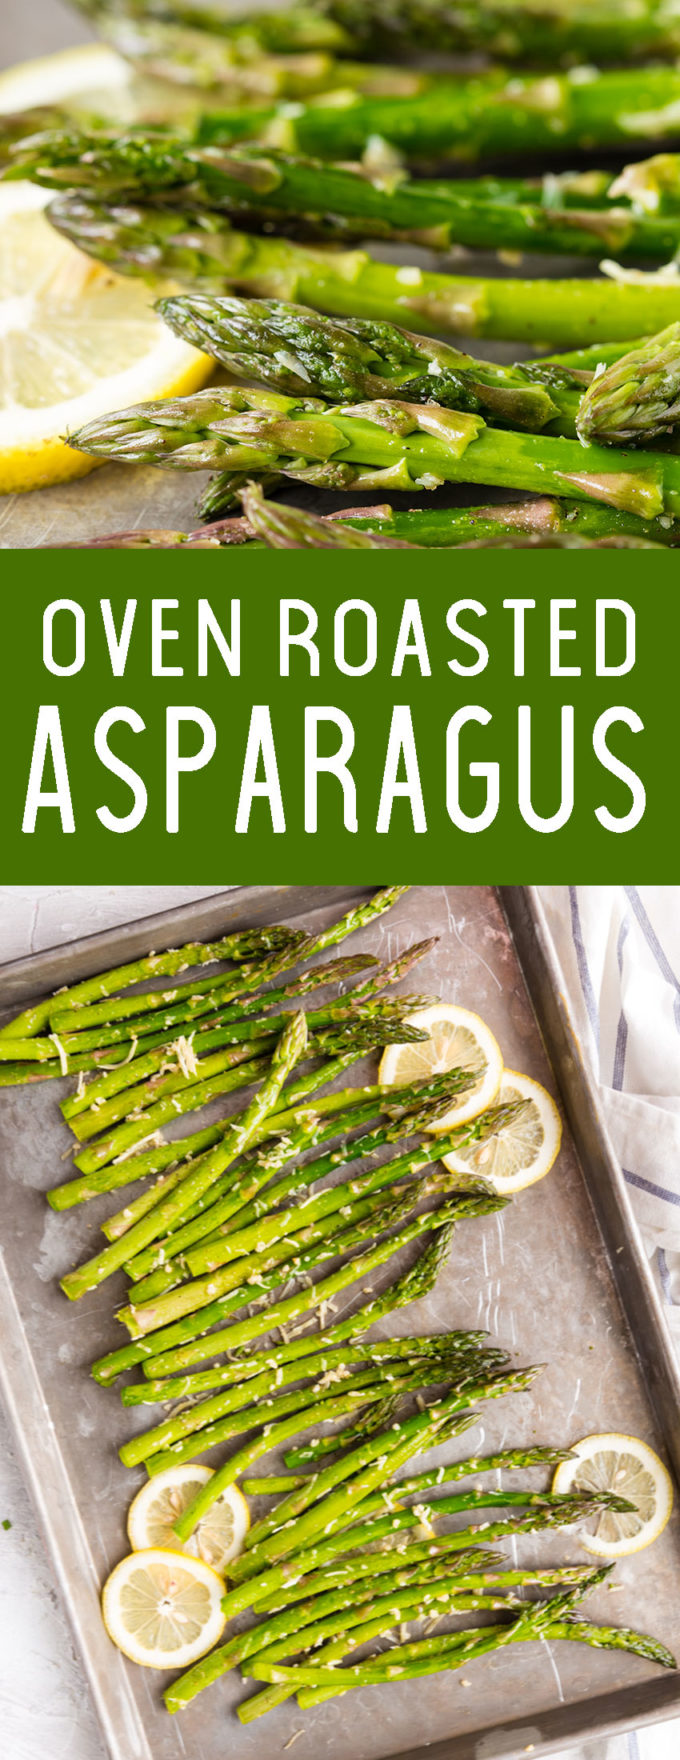 This amazing oven roasted asparagus topped with parmesan cheese! It is amazing and delicious.